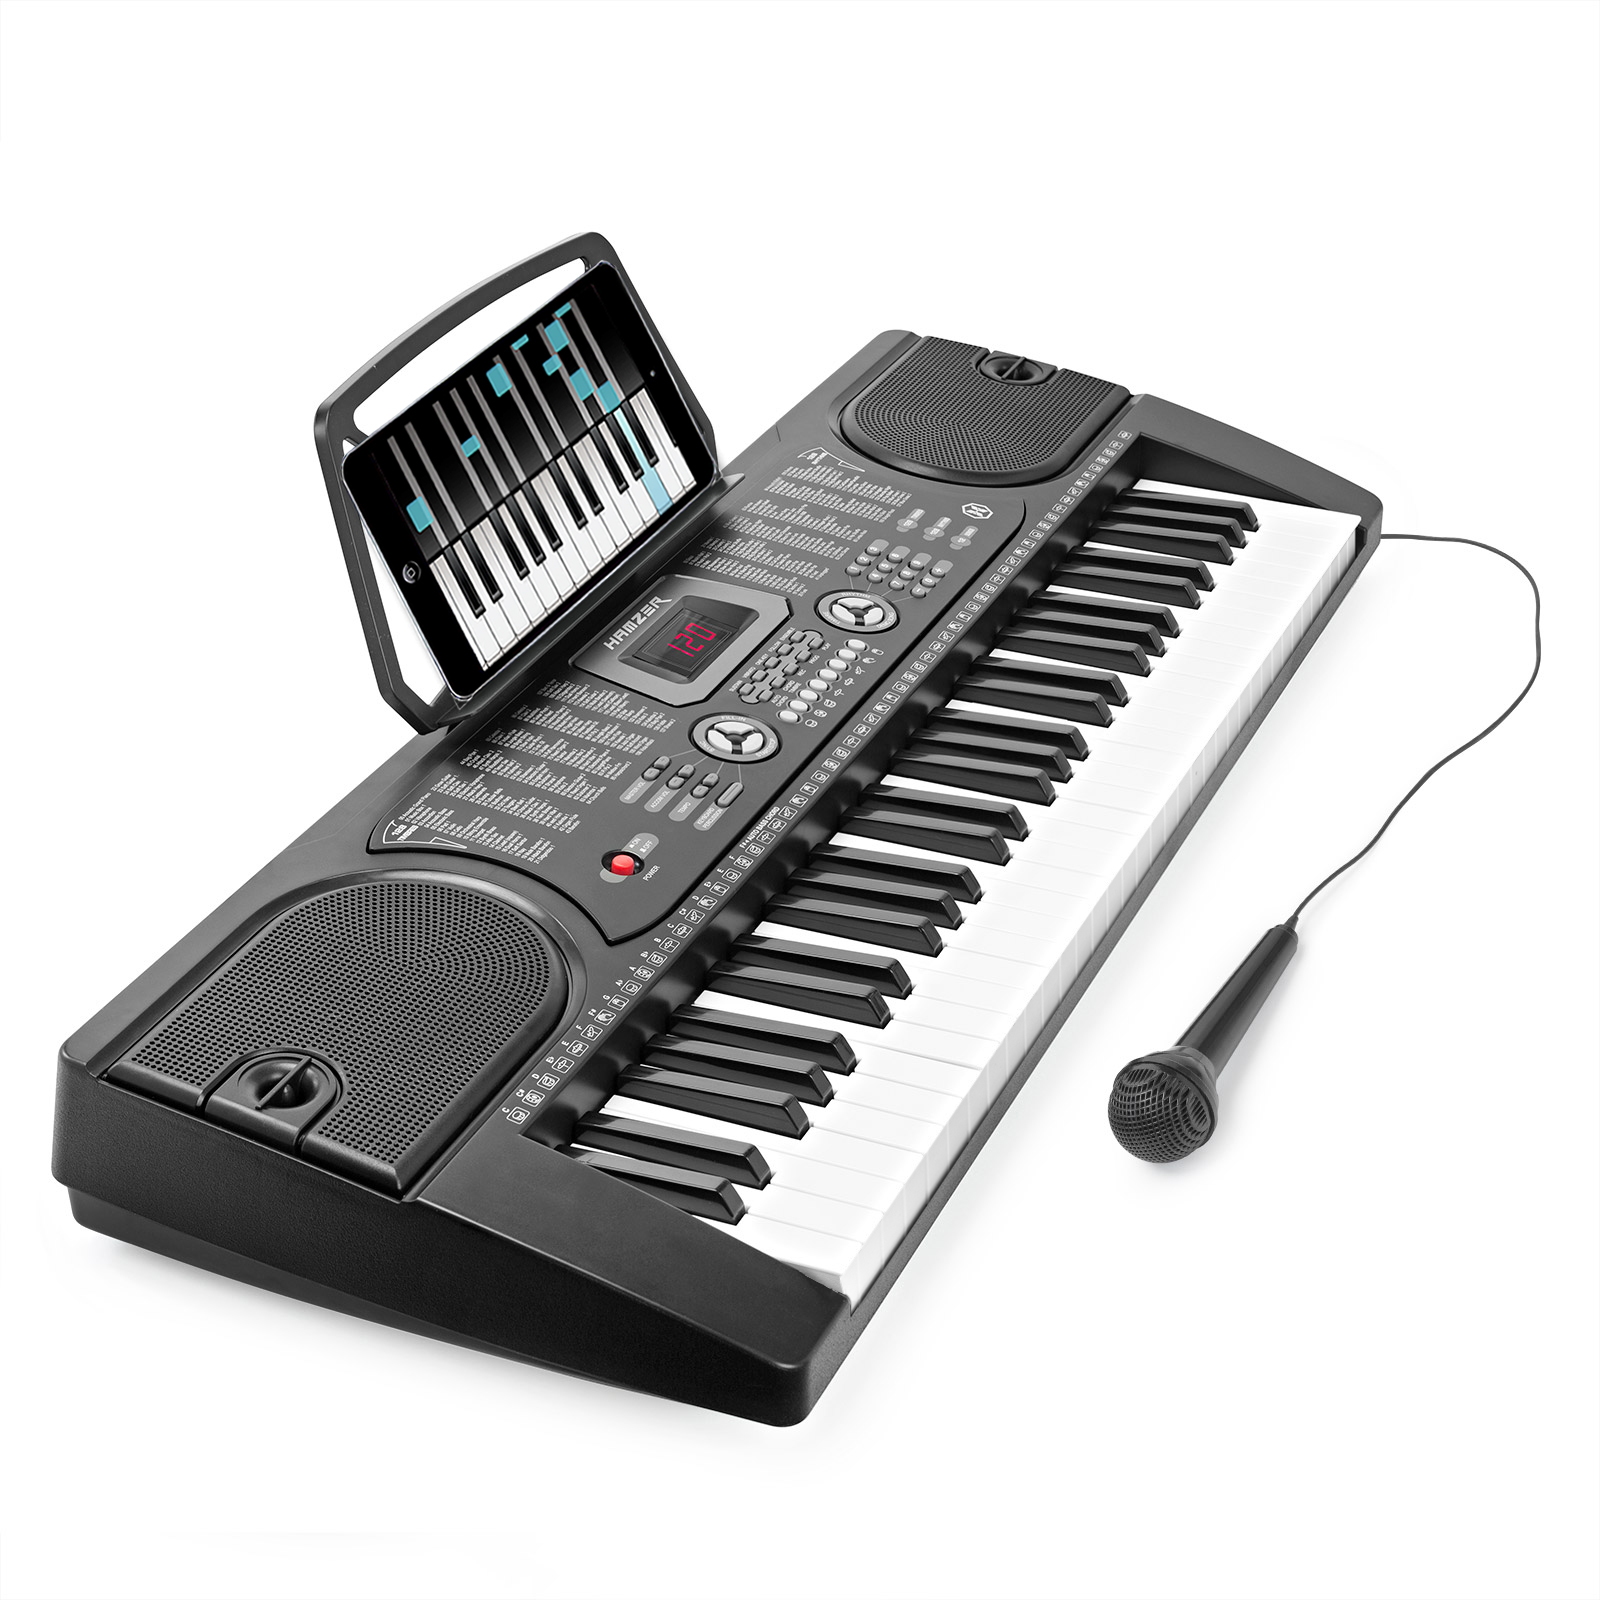 Hamzer 61-Key Digital Music Piano Keyboard - Portable Electronic Musical Instrument - with Microphone